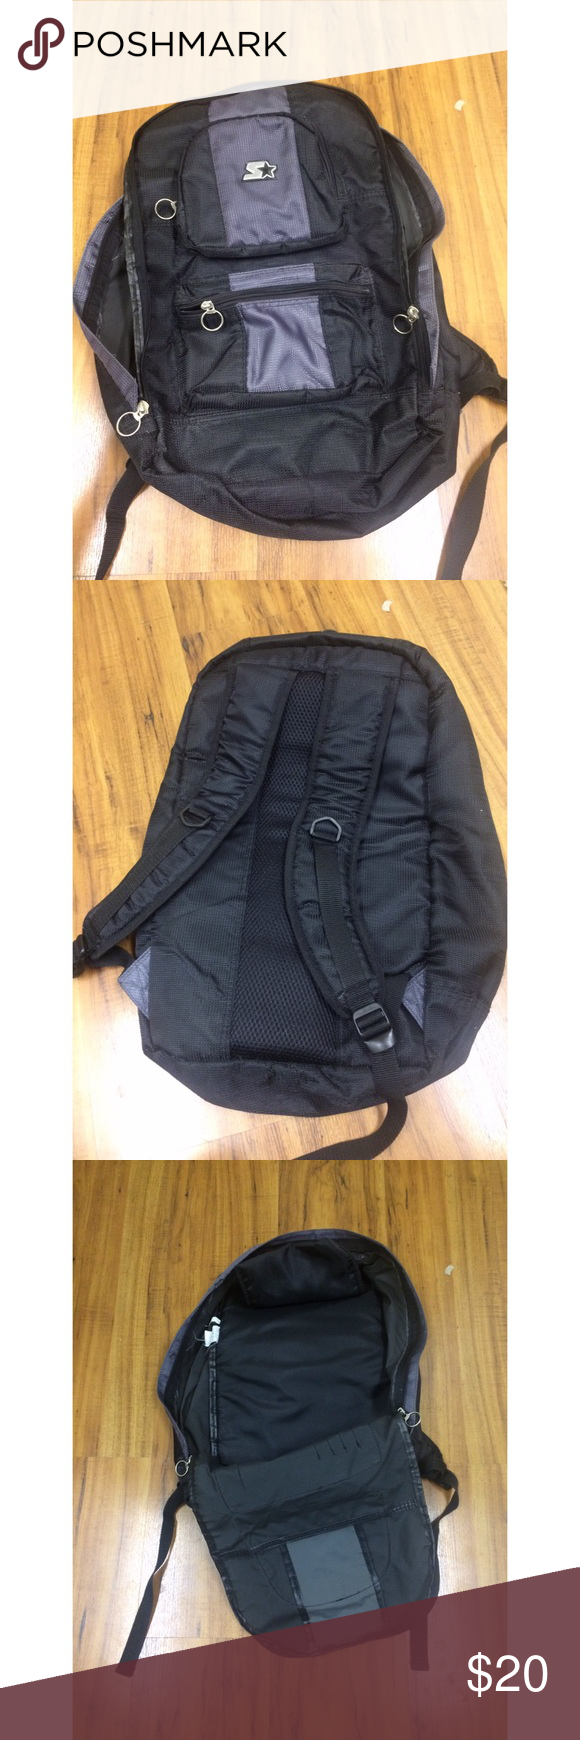 Starter Bagpack Used but very acceptable and in good condition Bags Backpacks